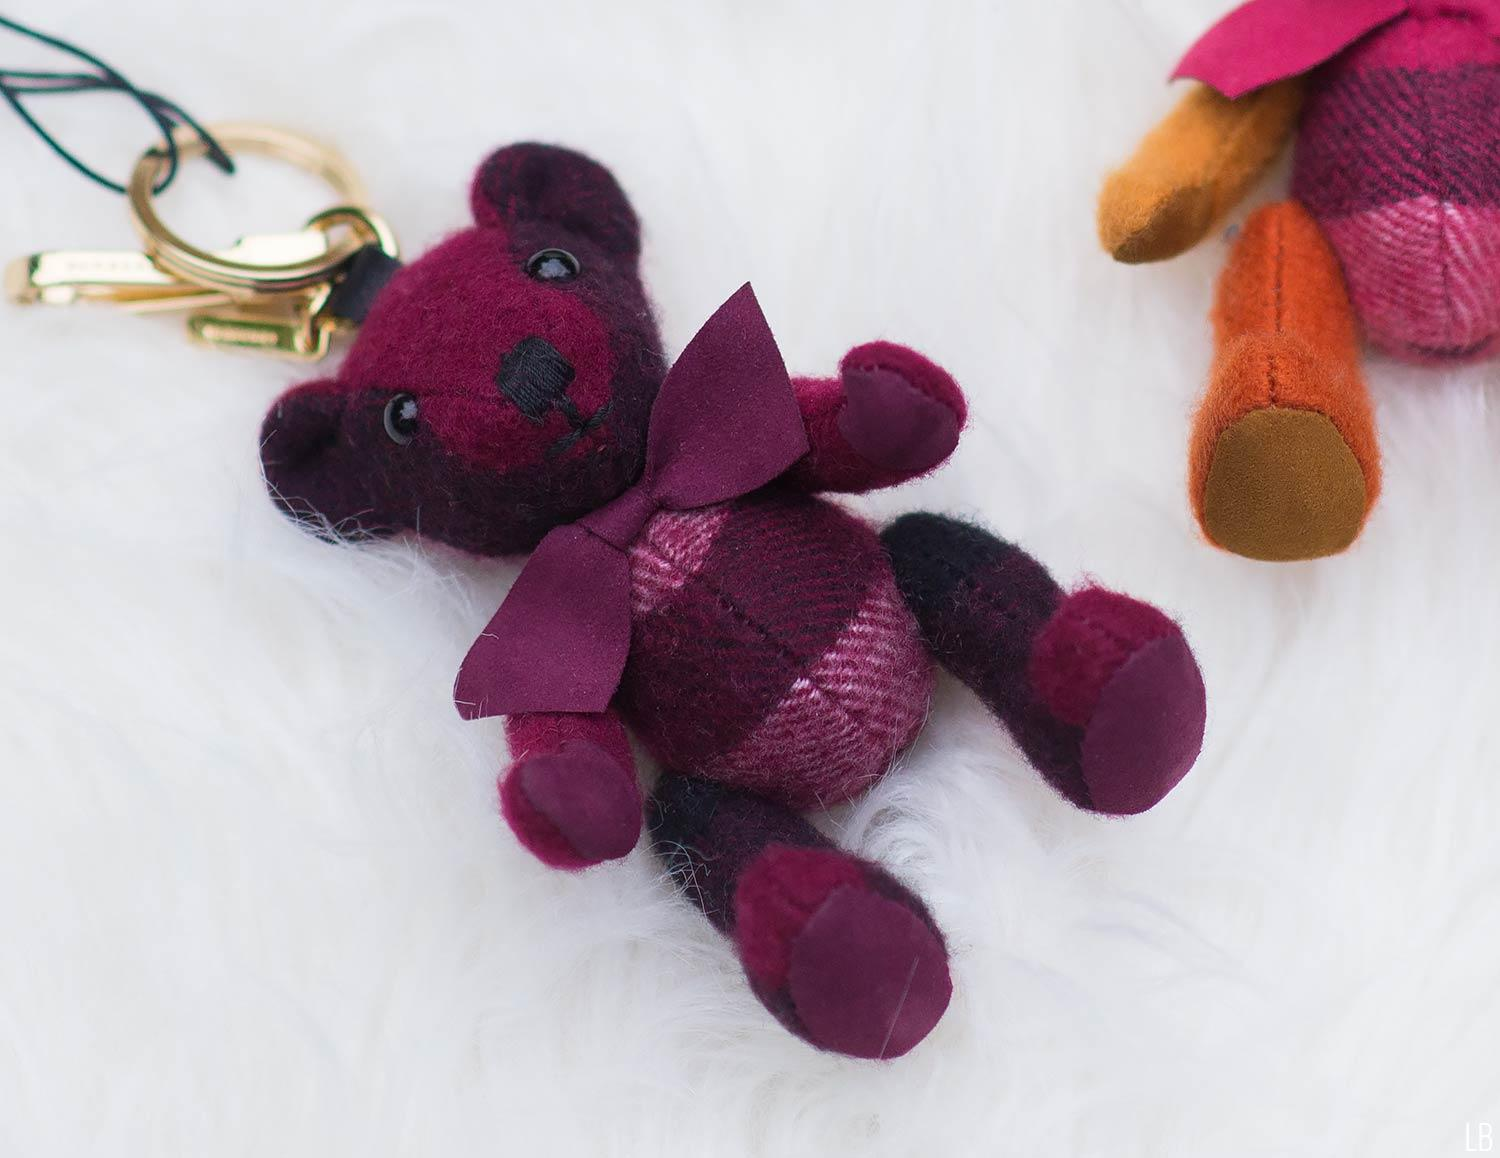 burberry-thomas-bear-plum-bag-charm